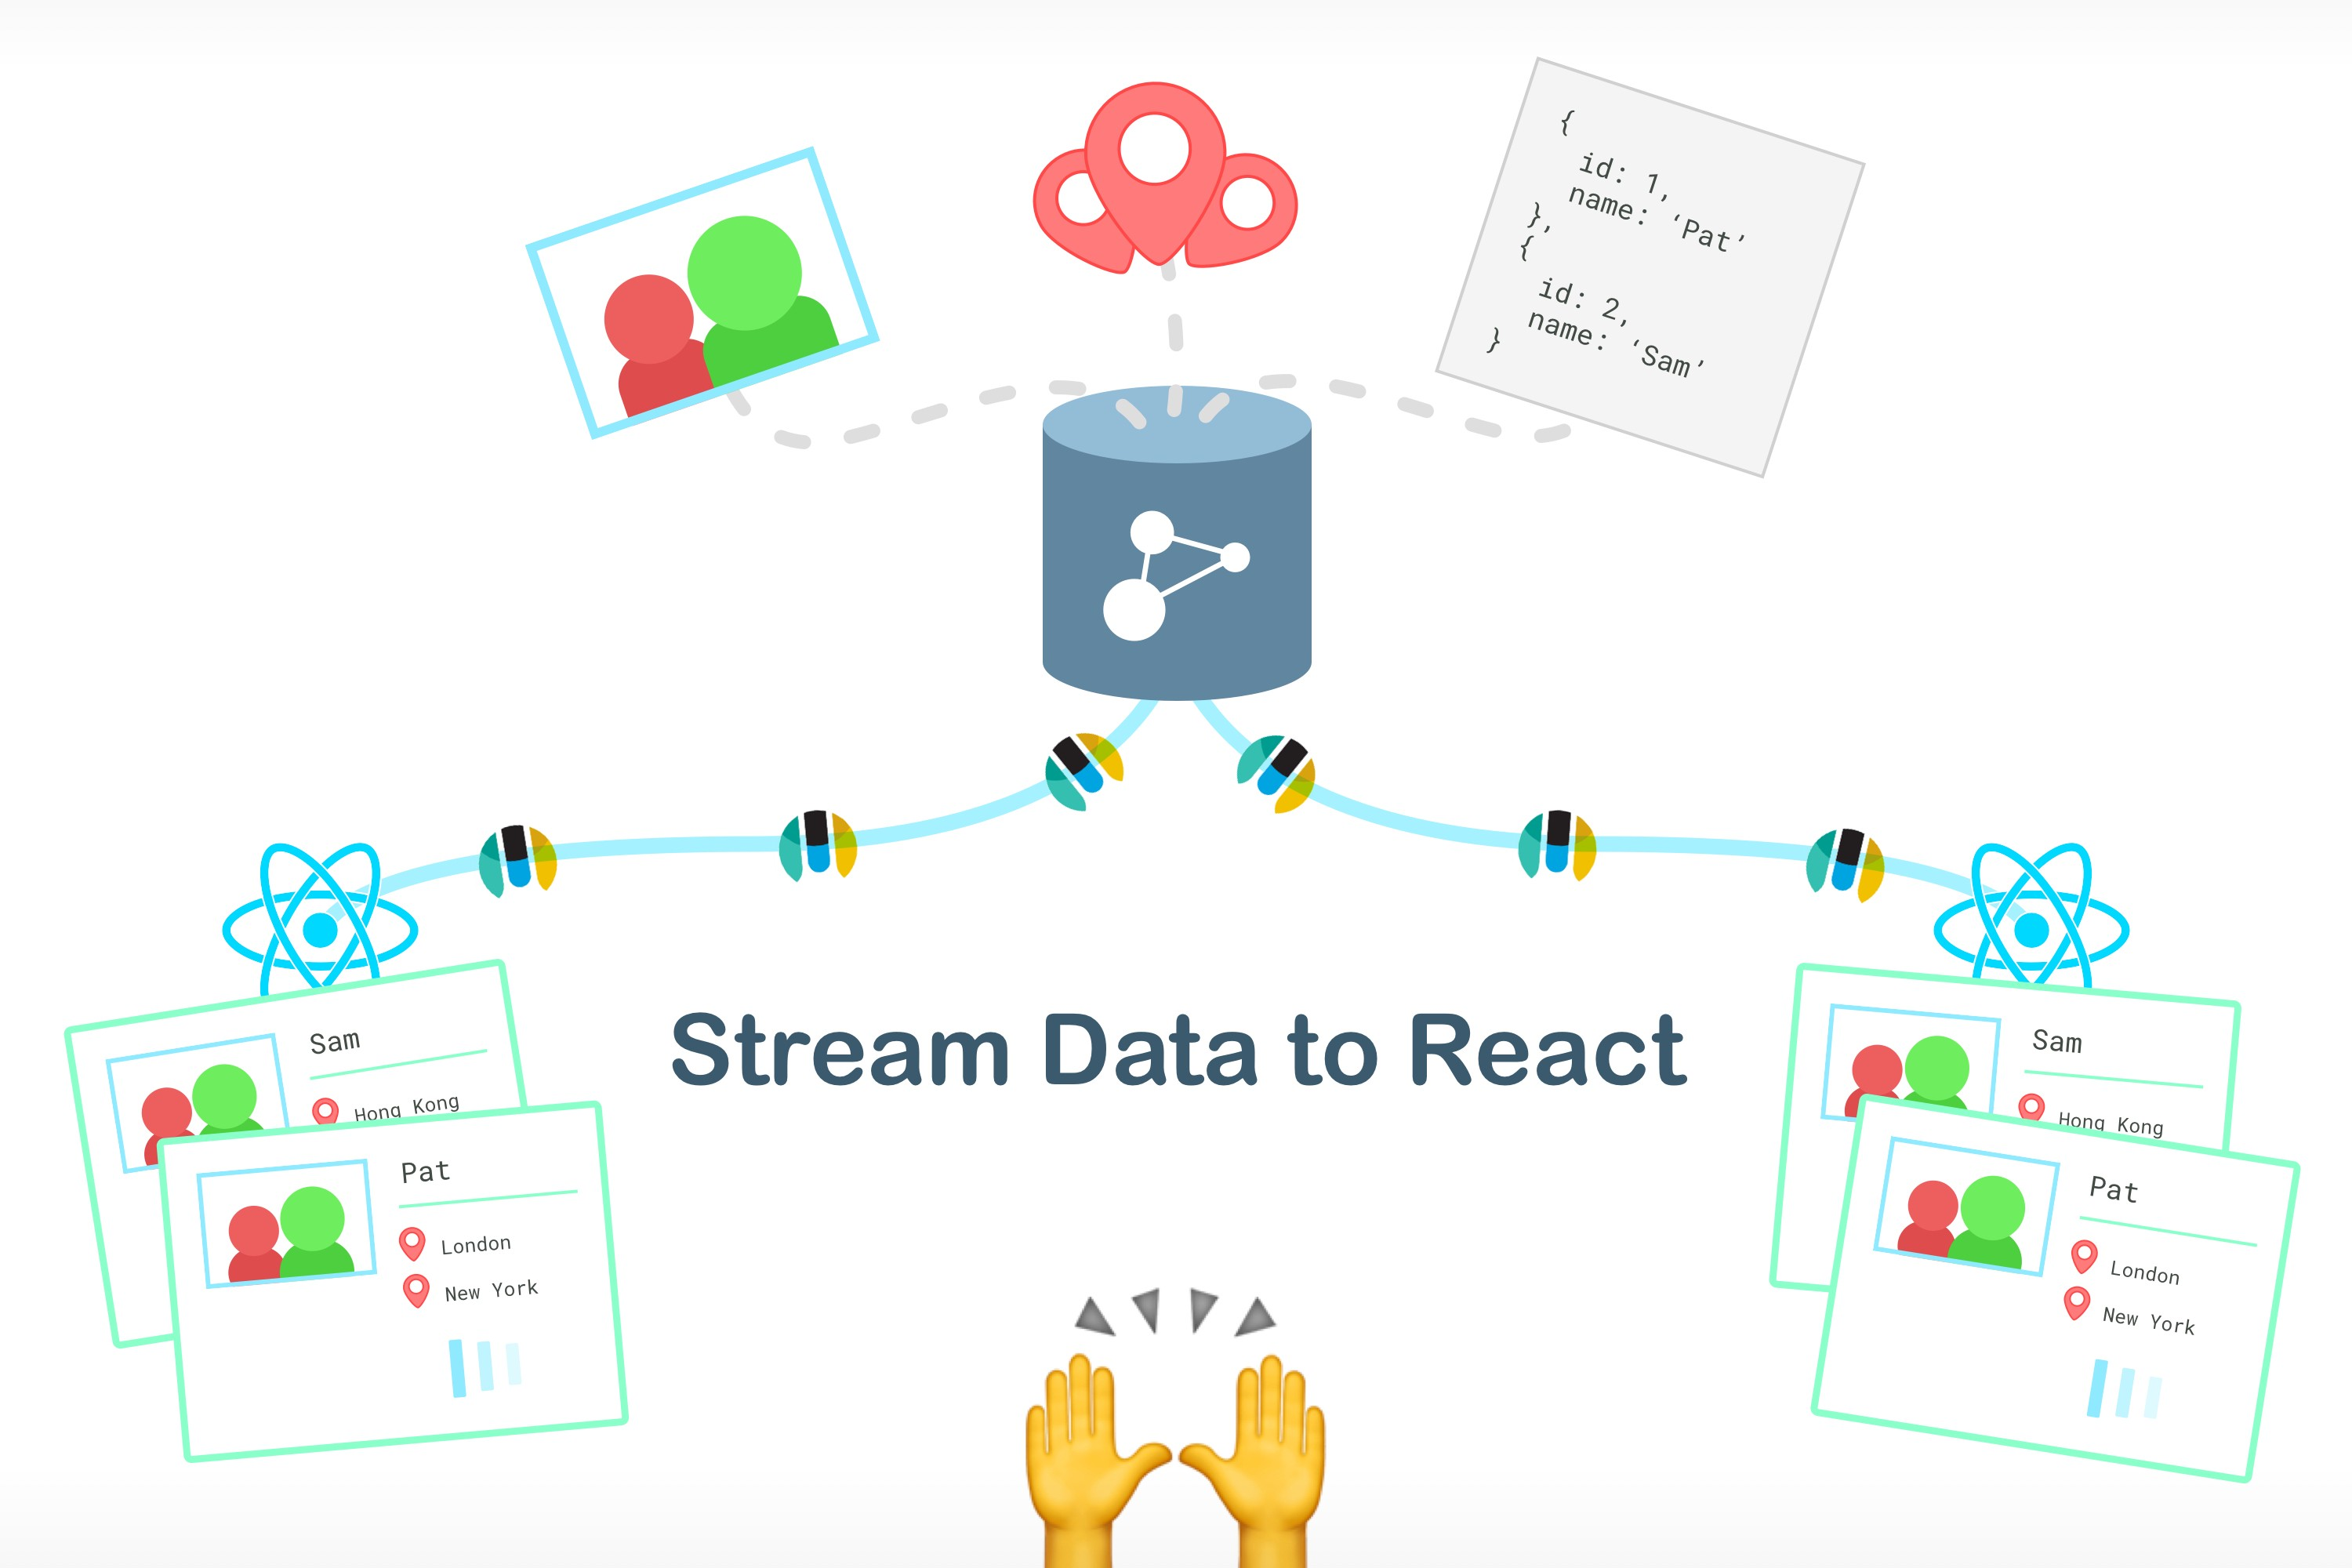 Streaming ElasticSearch as Database, React for Frontend